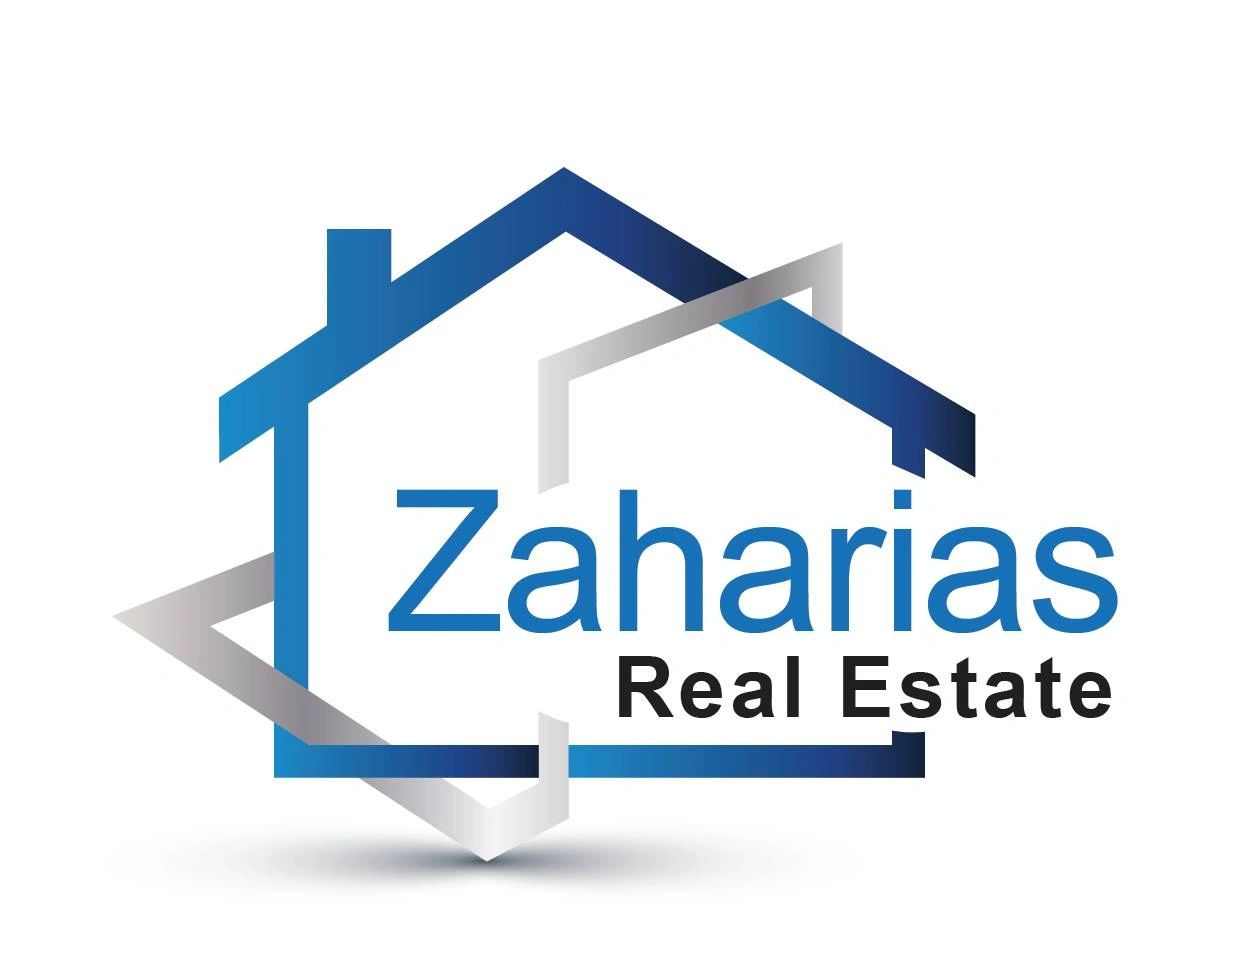 real estate careers, career in real estate, become a real estate agent, join our team, realtor jobs